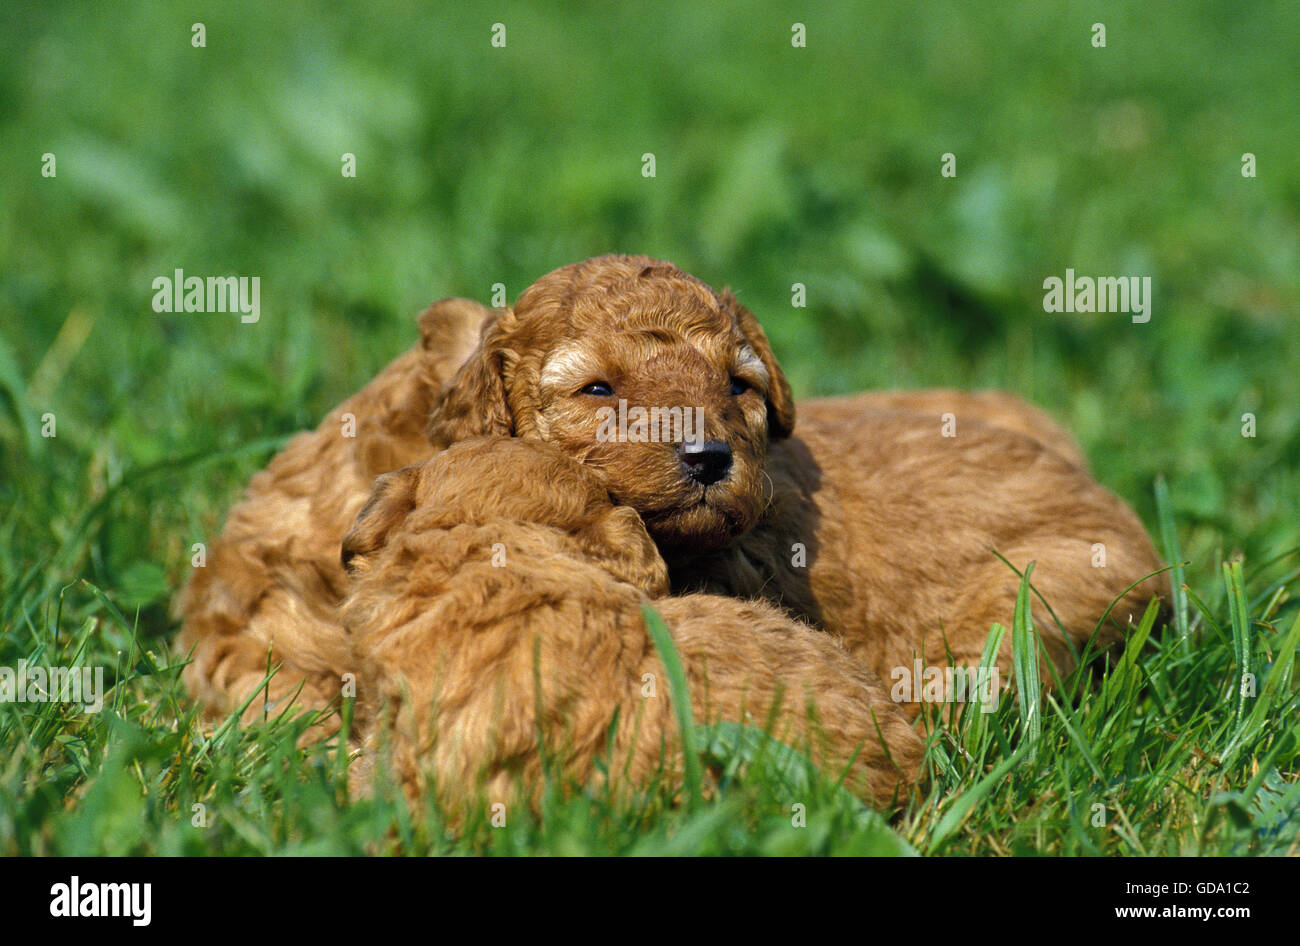 Apricot Miniature Poodle Dog, Pups laying on Grass - Stock Image